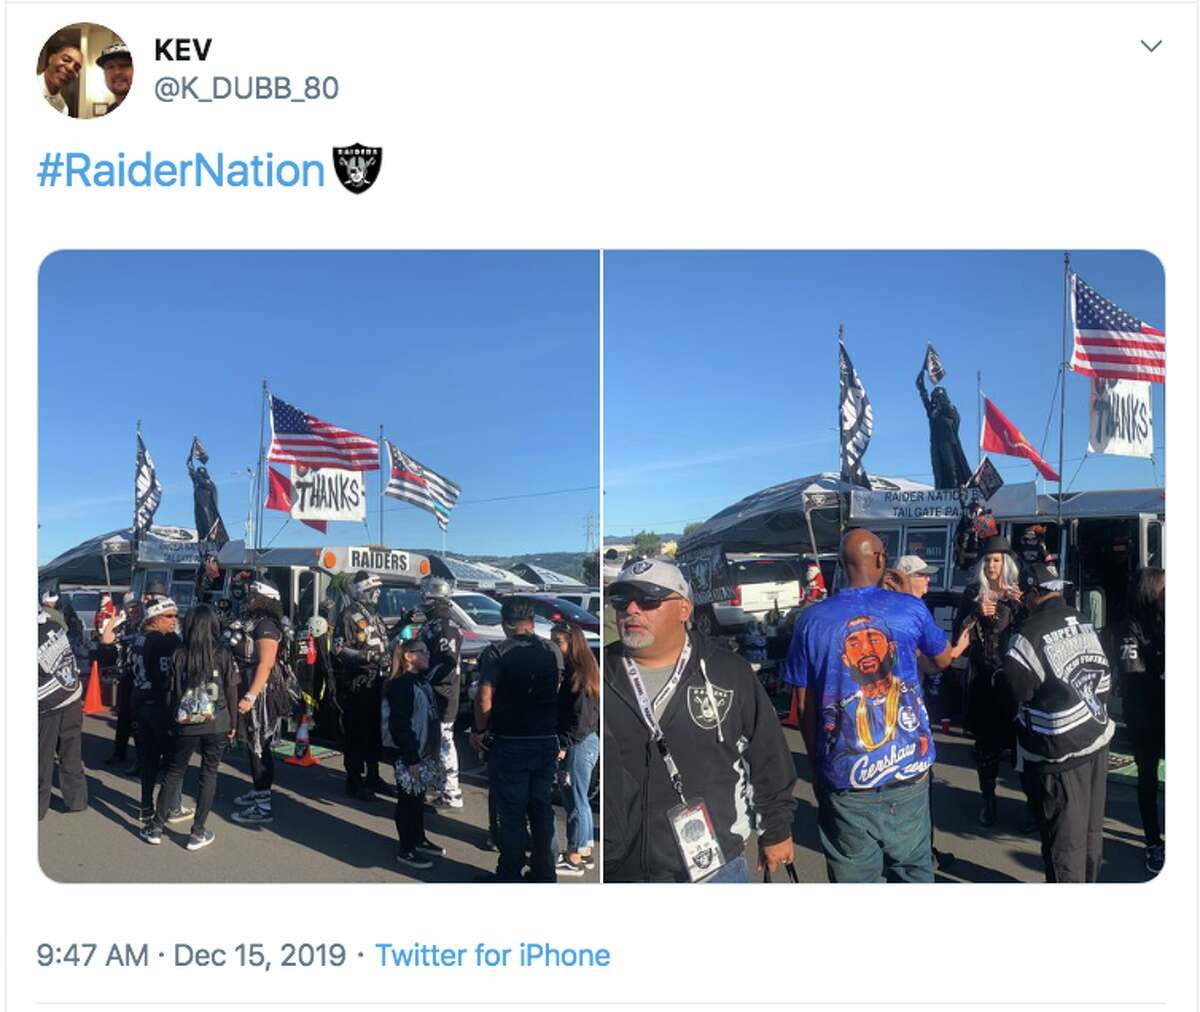 Fans bid farewell to the Raiders at the Oakland Coliseum on Dec. 15, 2019. In 2020, the Raiders franchise moves to Las Vegas.